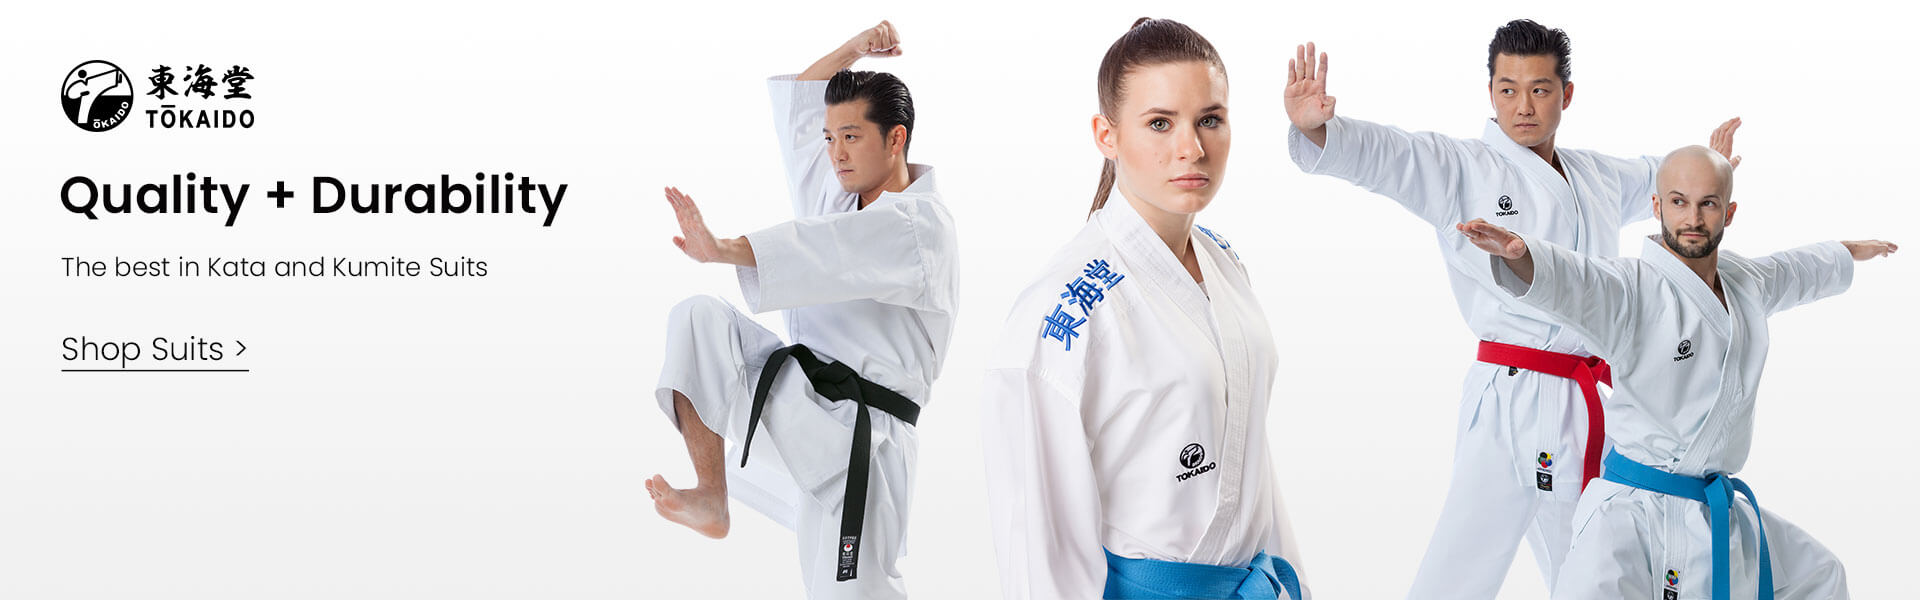 Quality + Durability - The best Kata and Kumite Suits